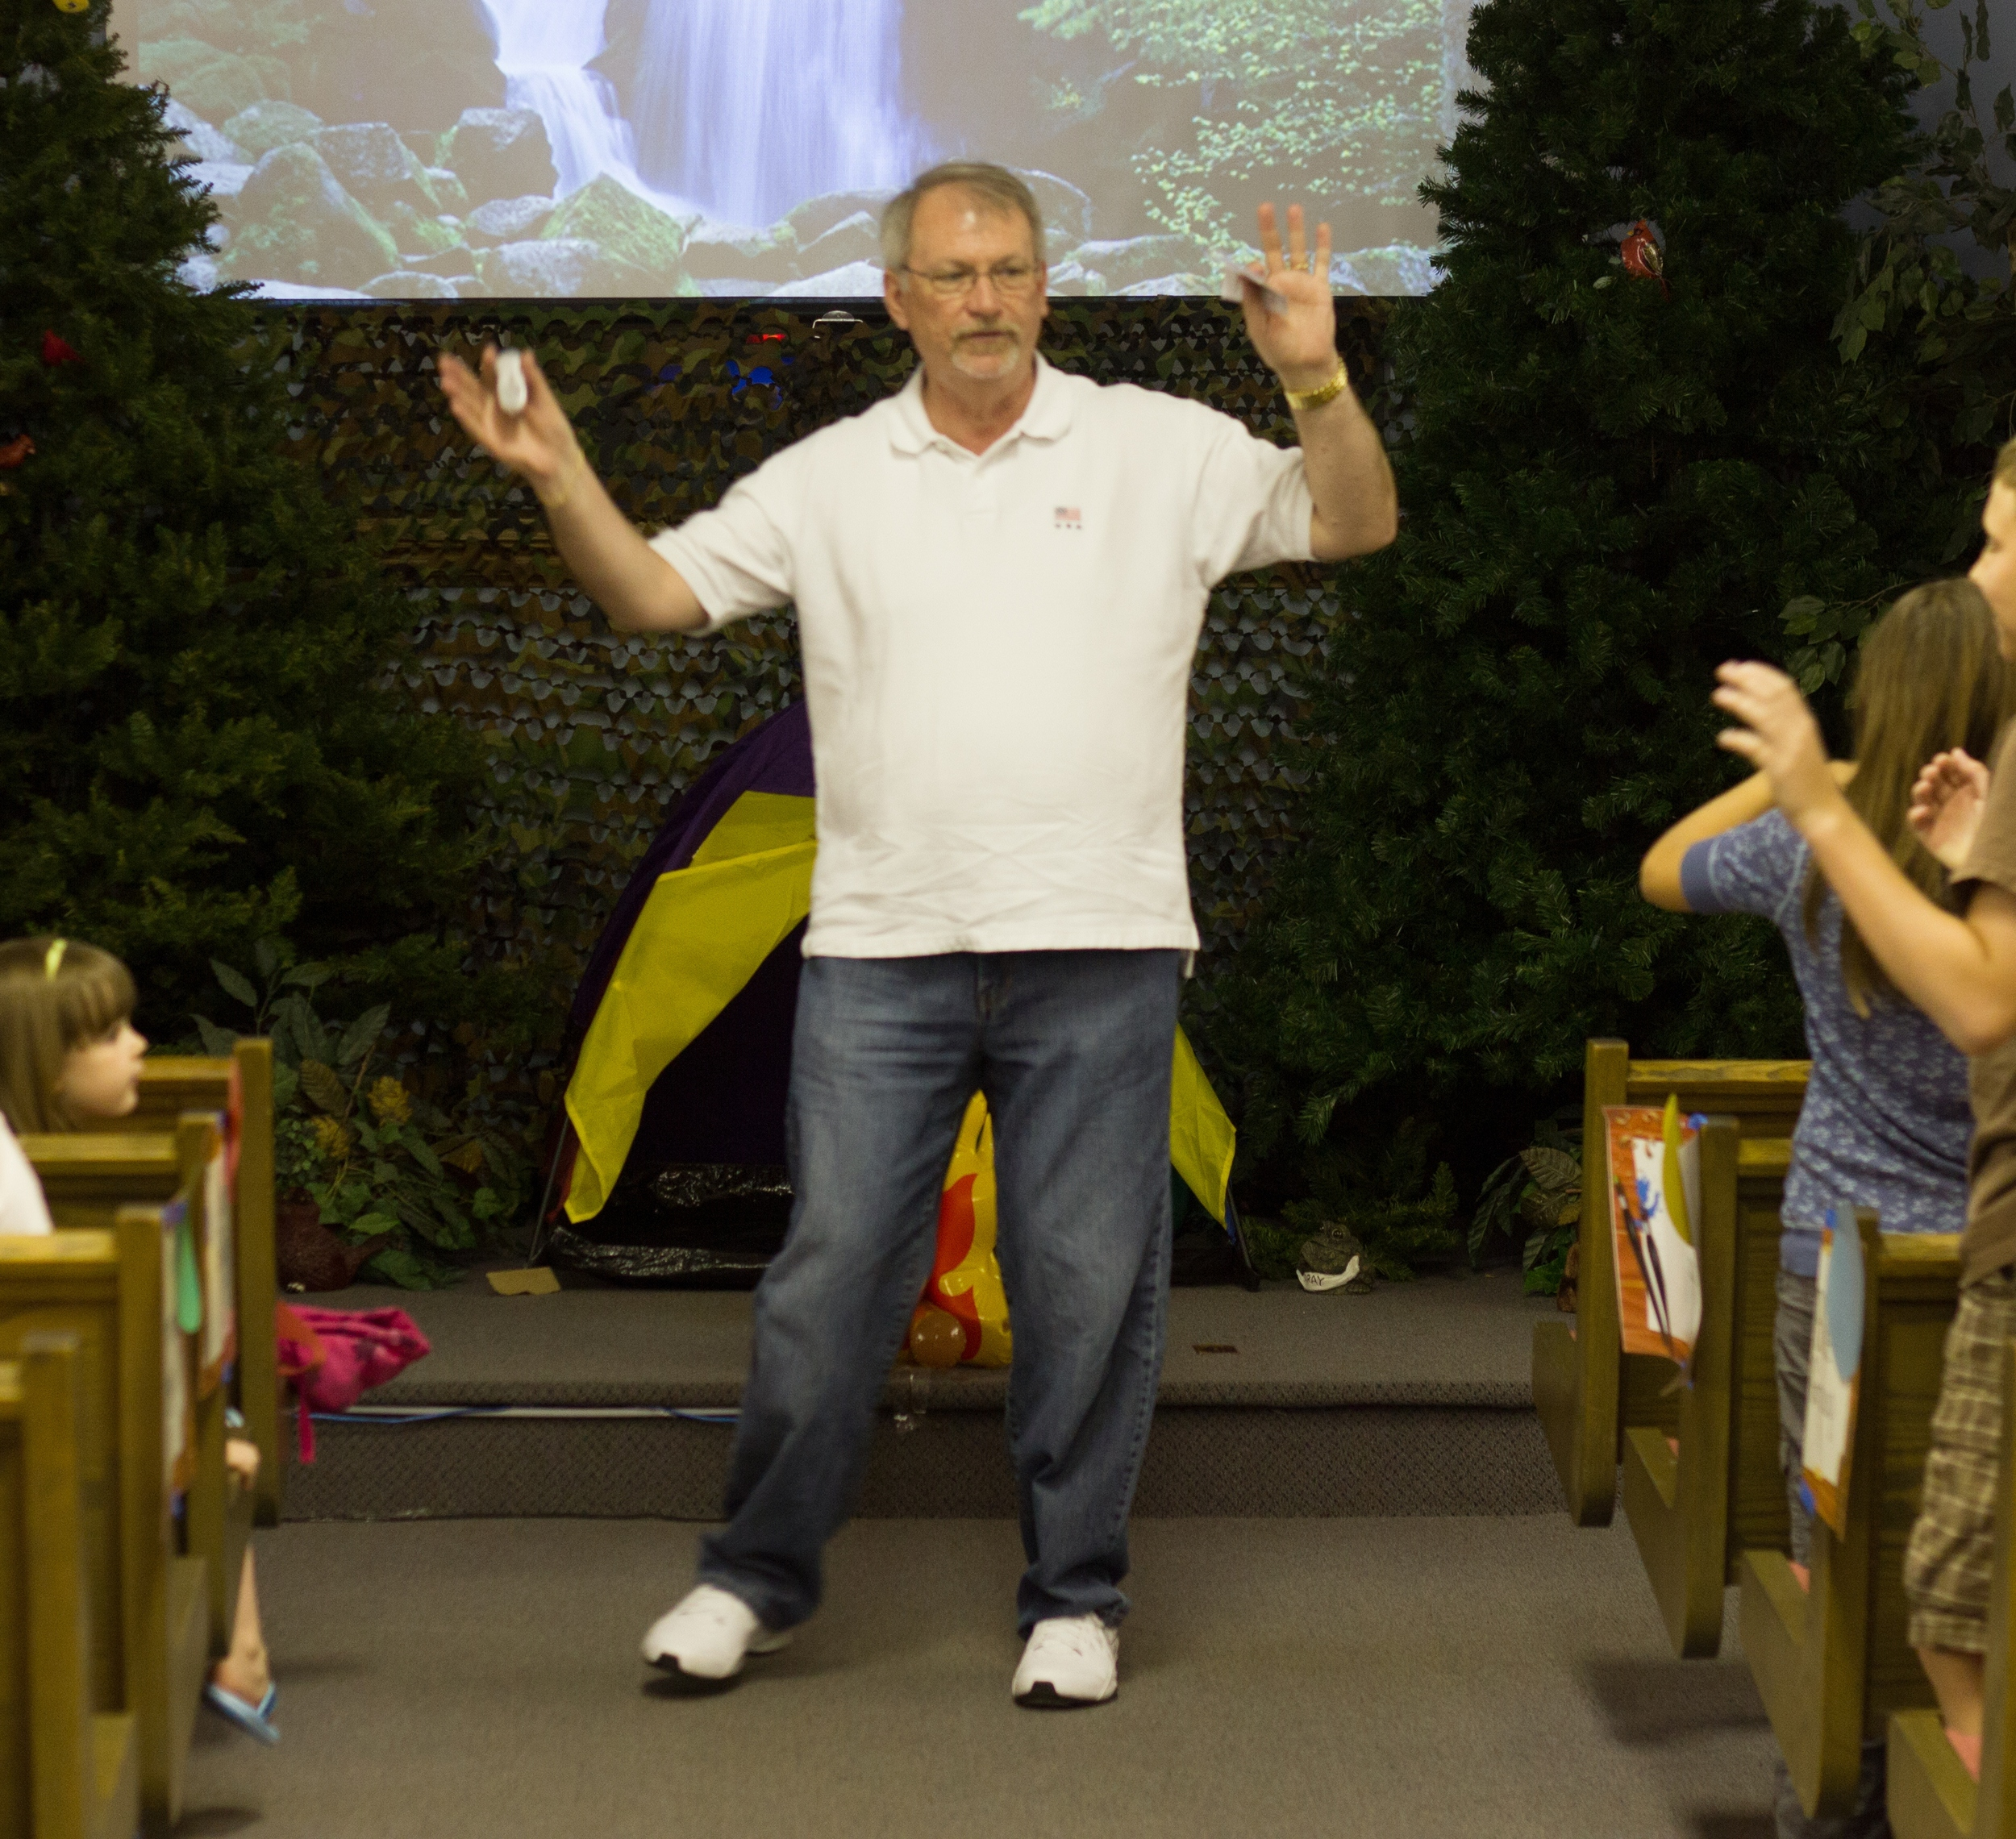 Randy Cass (Elder) in white, leading children in a song during a Vacation Bible School (VBS) event.